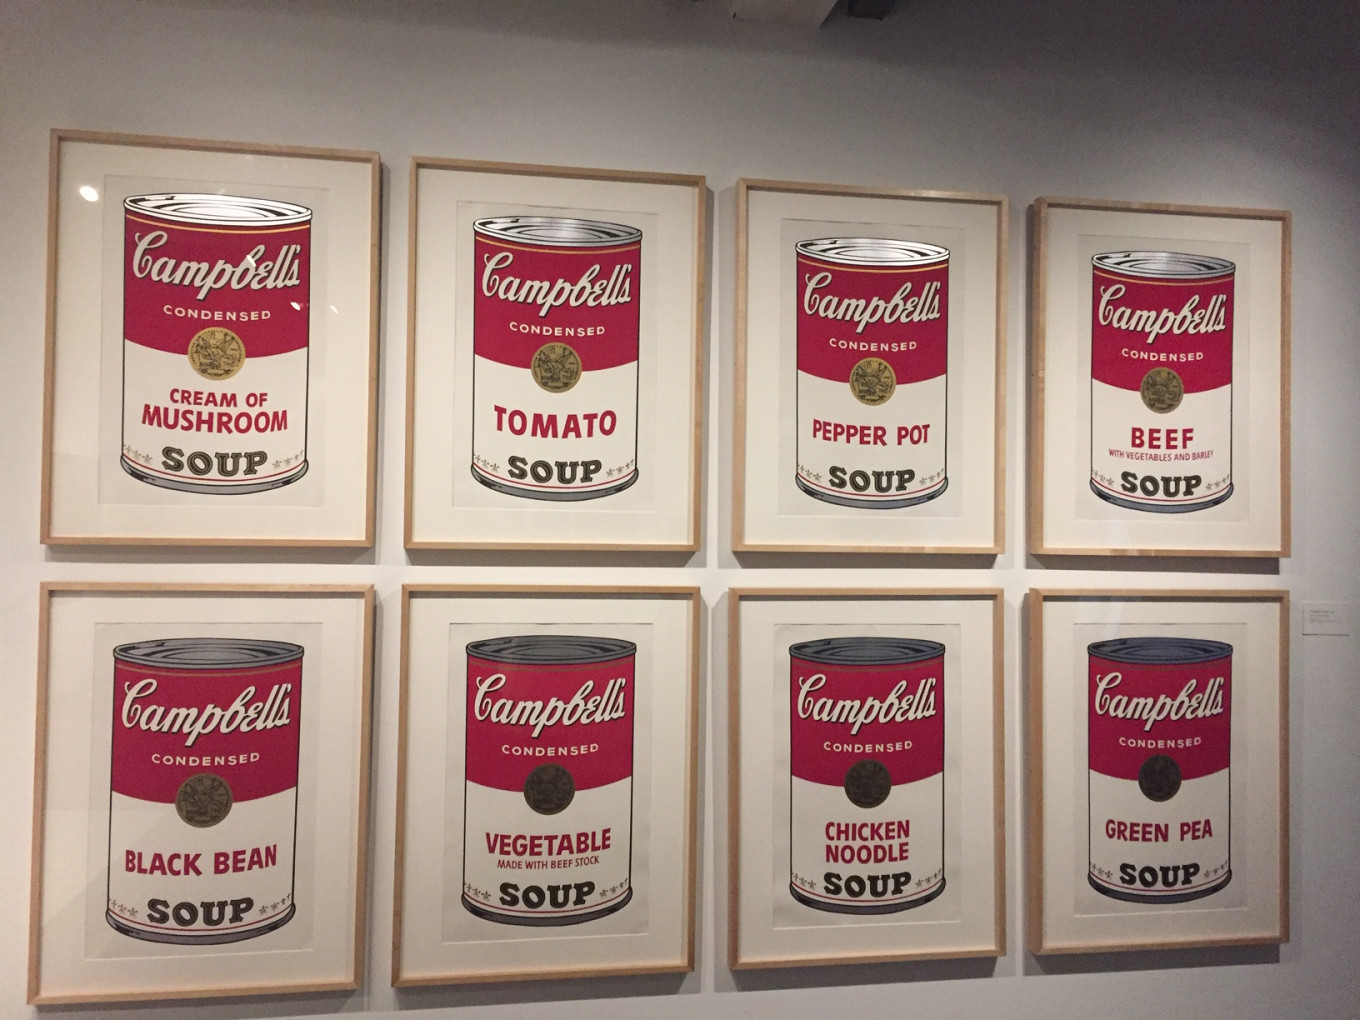 15 minutes not enough to get lost in Andy Warhol Museum